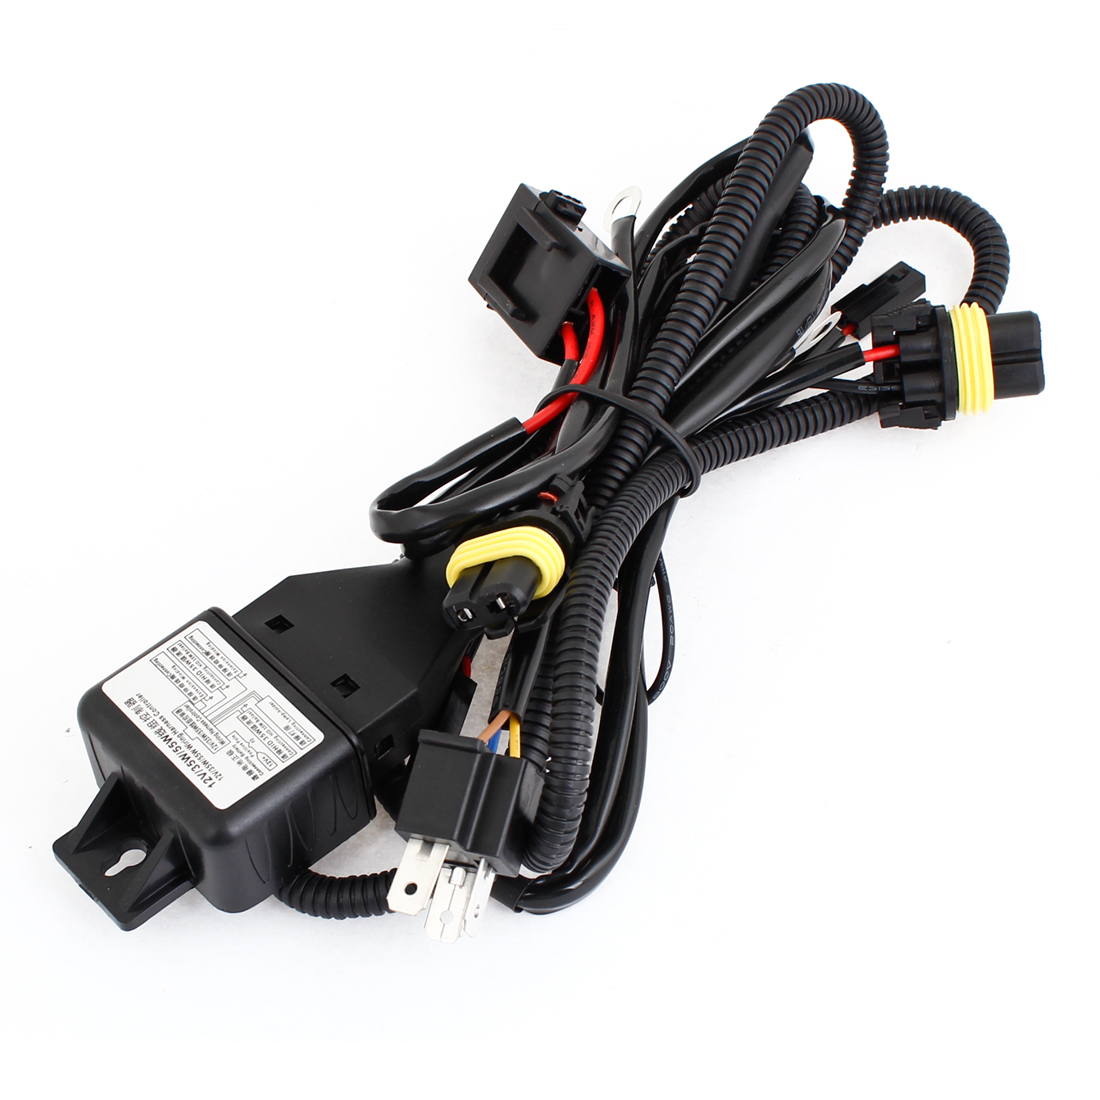 Unique Bargains 15m Cable Hid Xenon Dc 12v 35w 55w Wiring Harness For Vehicle Controller Car